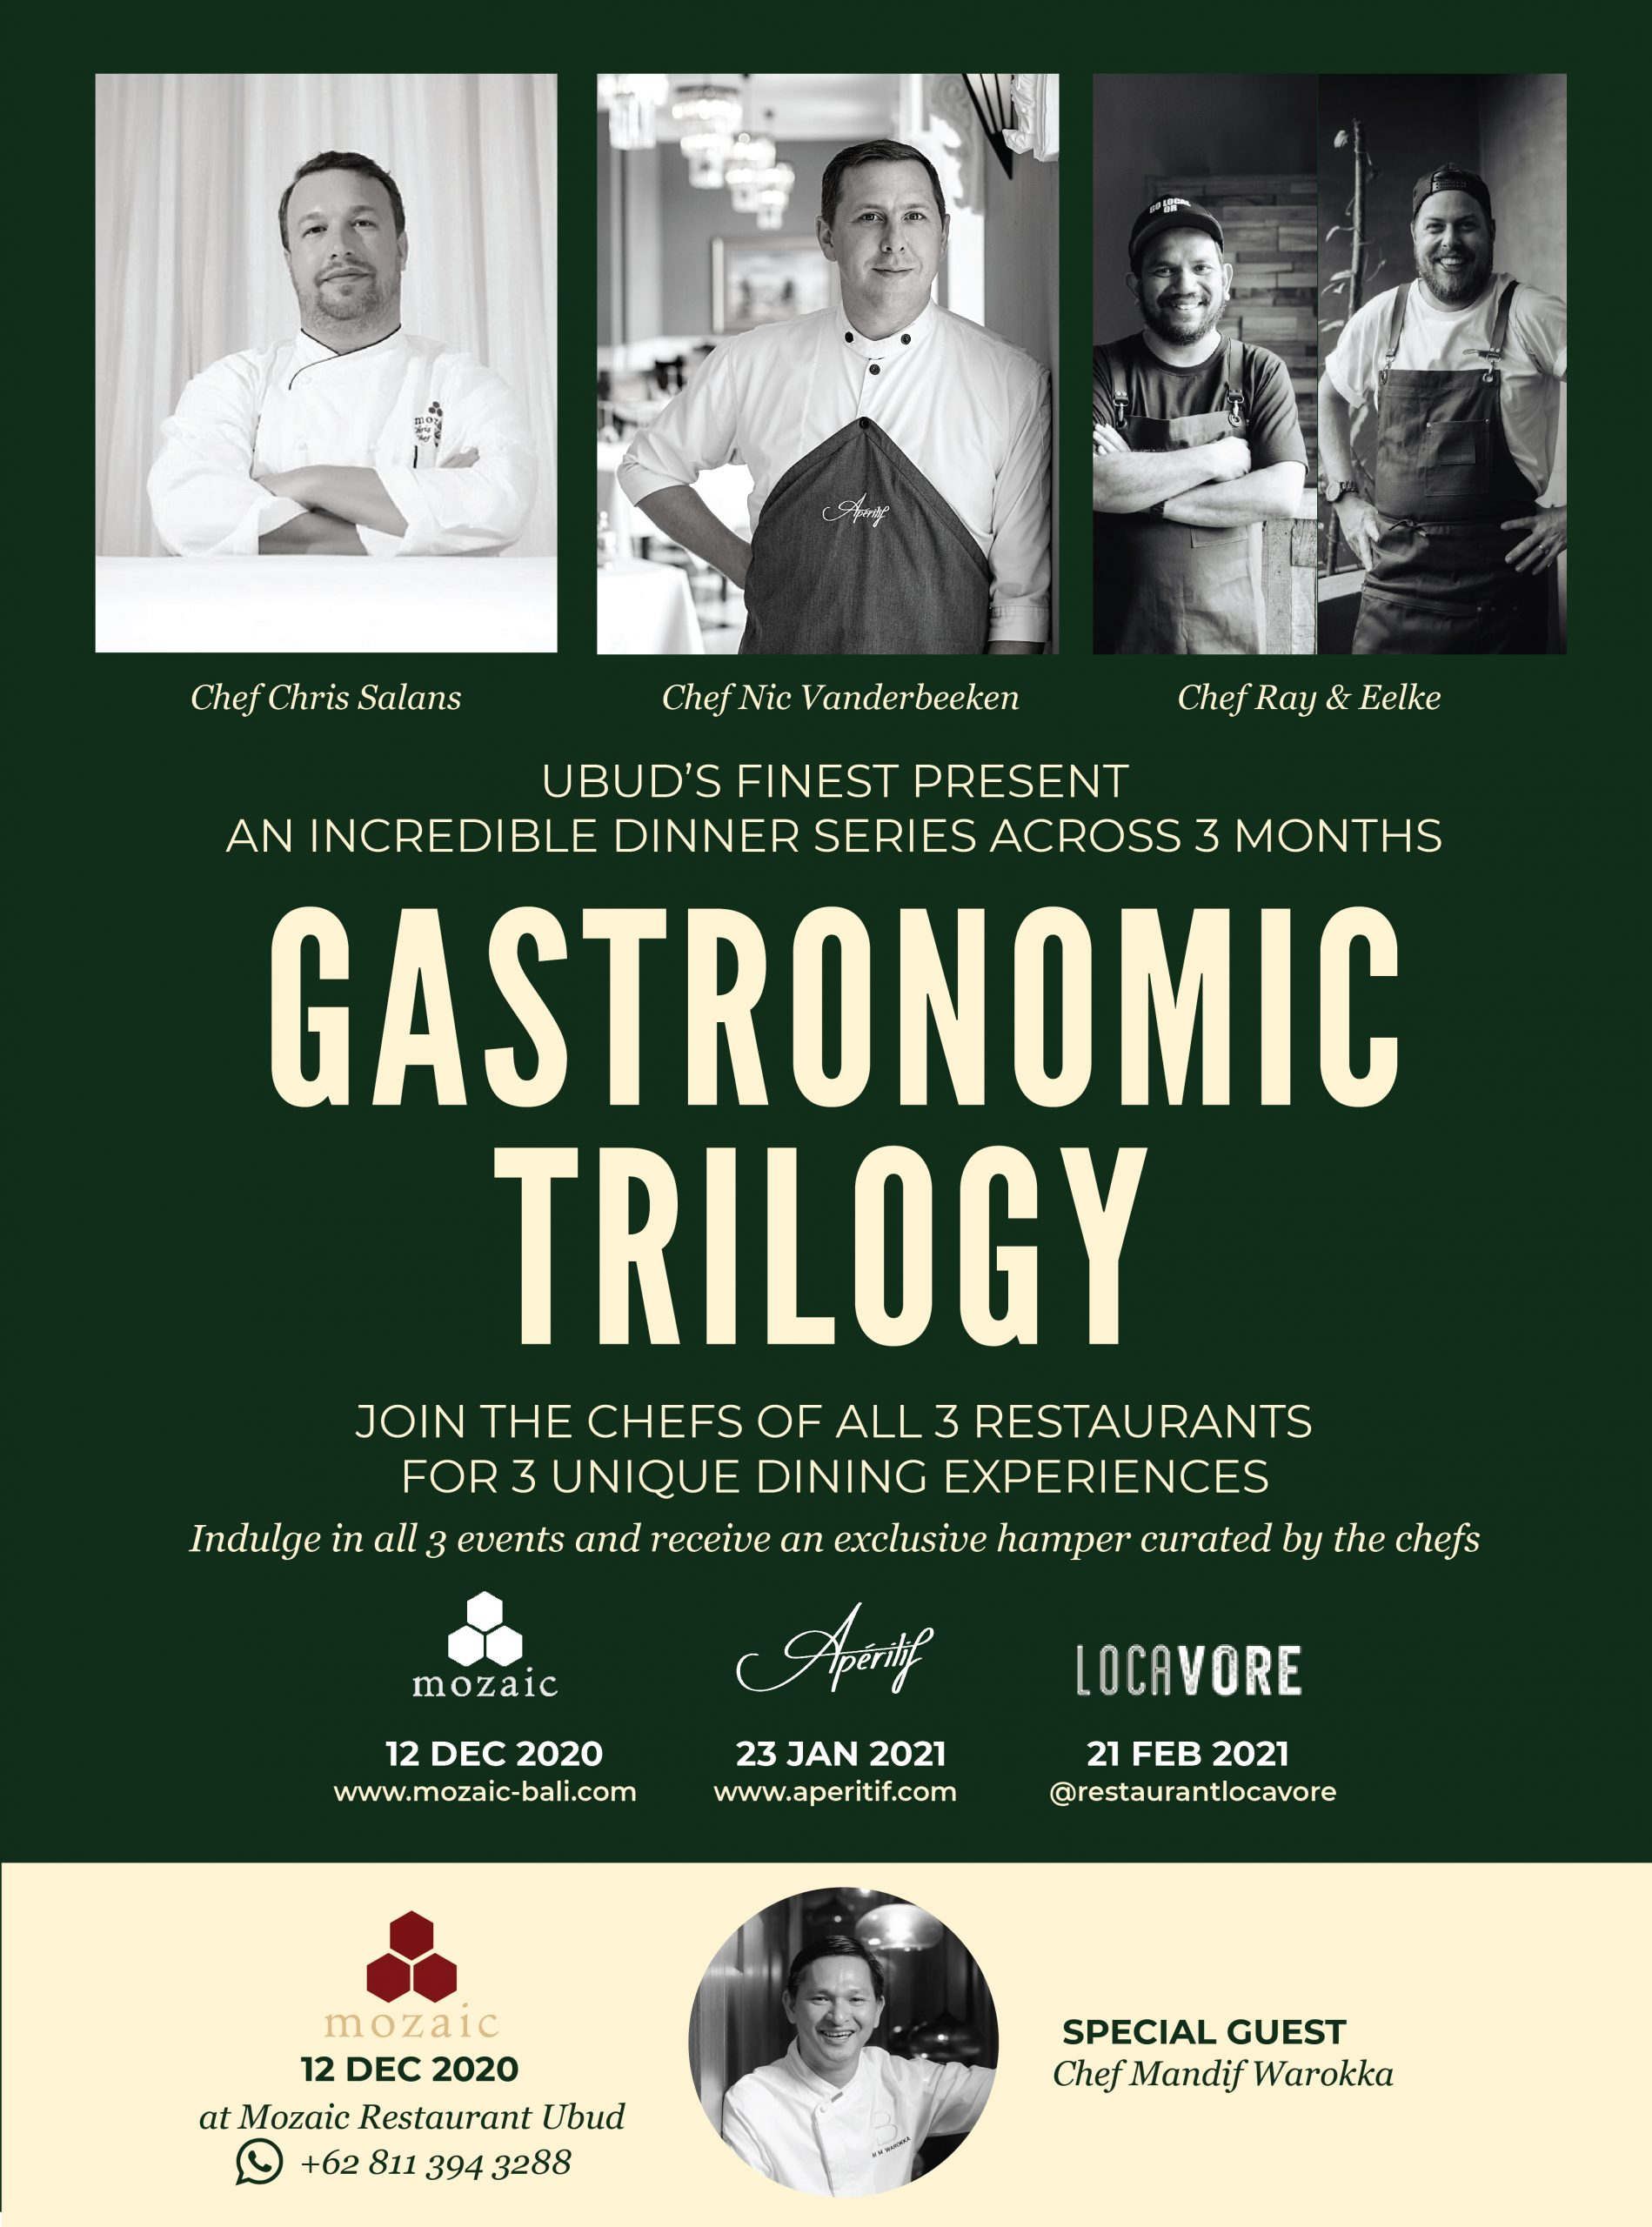 https://highend-traveller.com/a-gastronomic-trilogy/